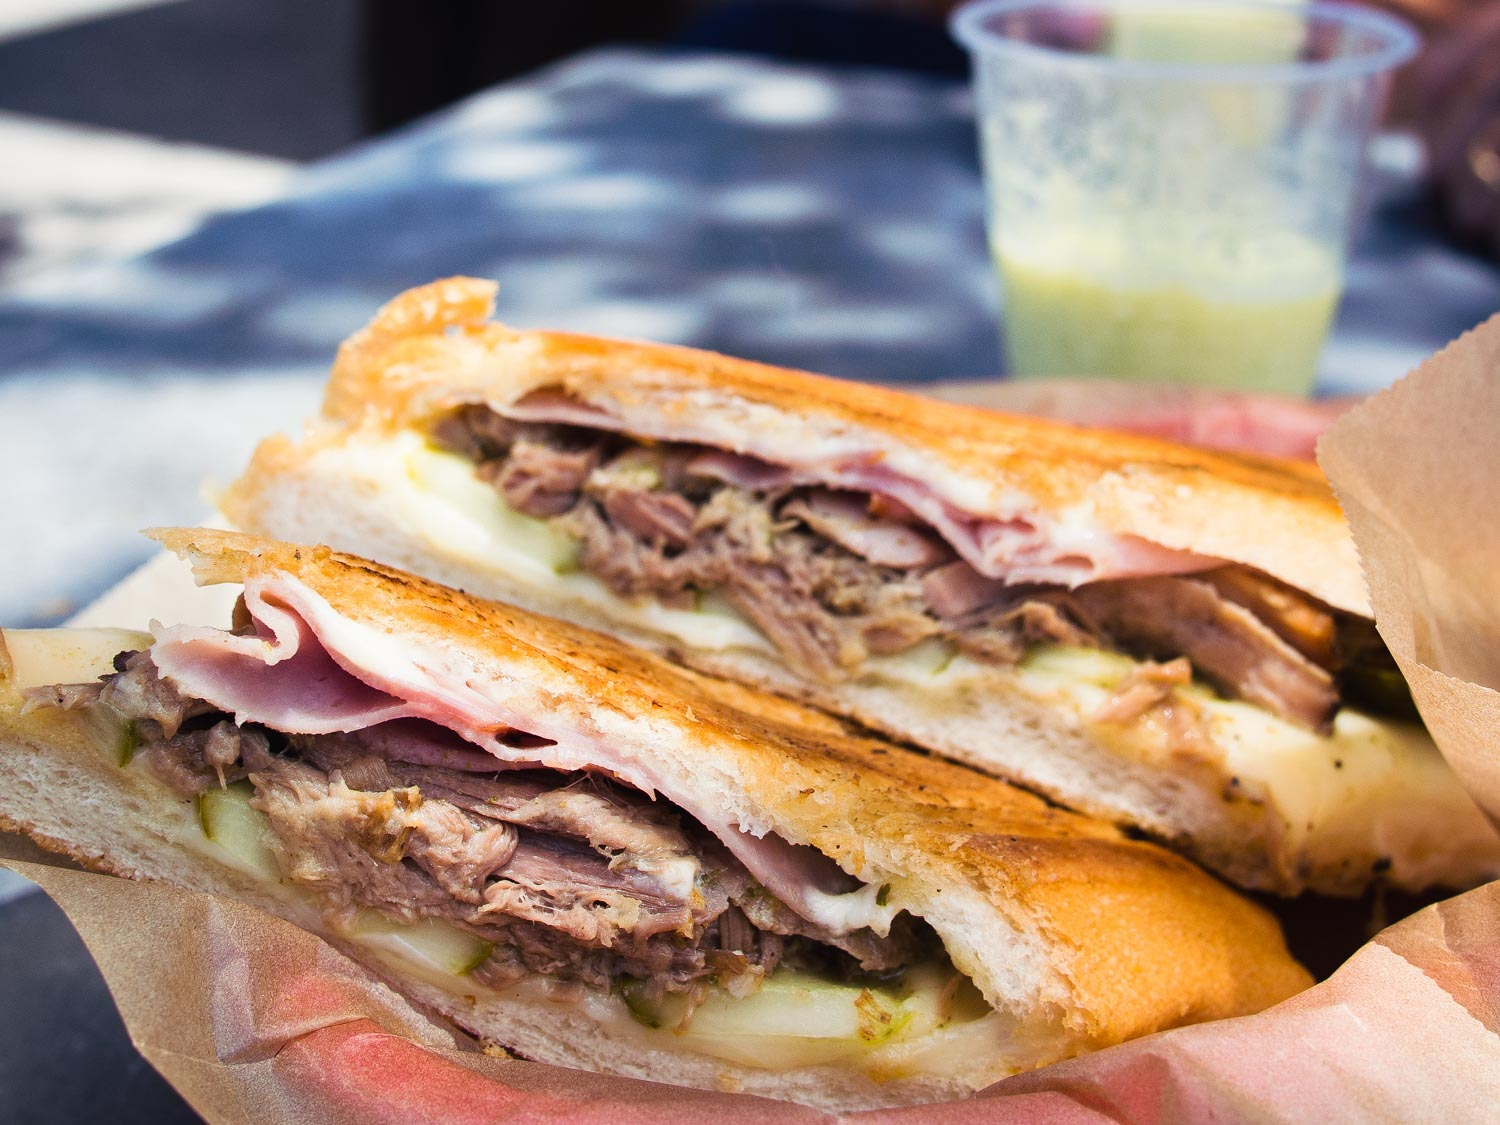 The Cuban sandwich is one of the best sandwiches in the world.